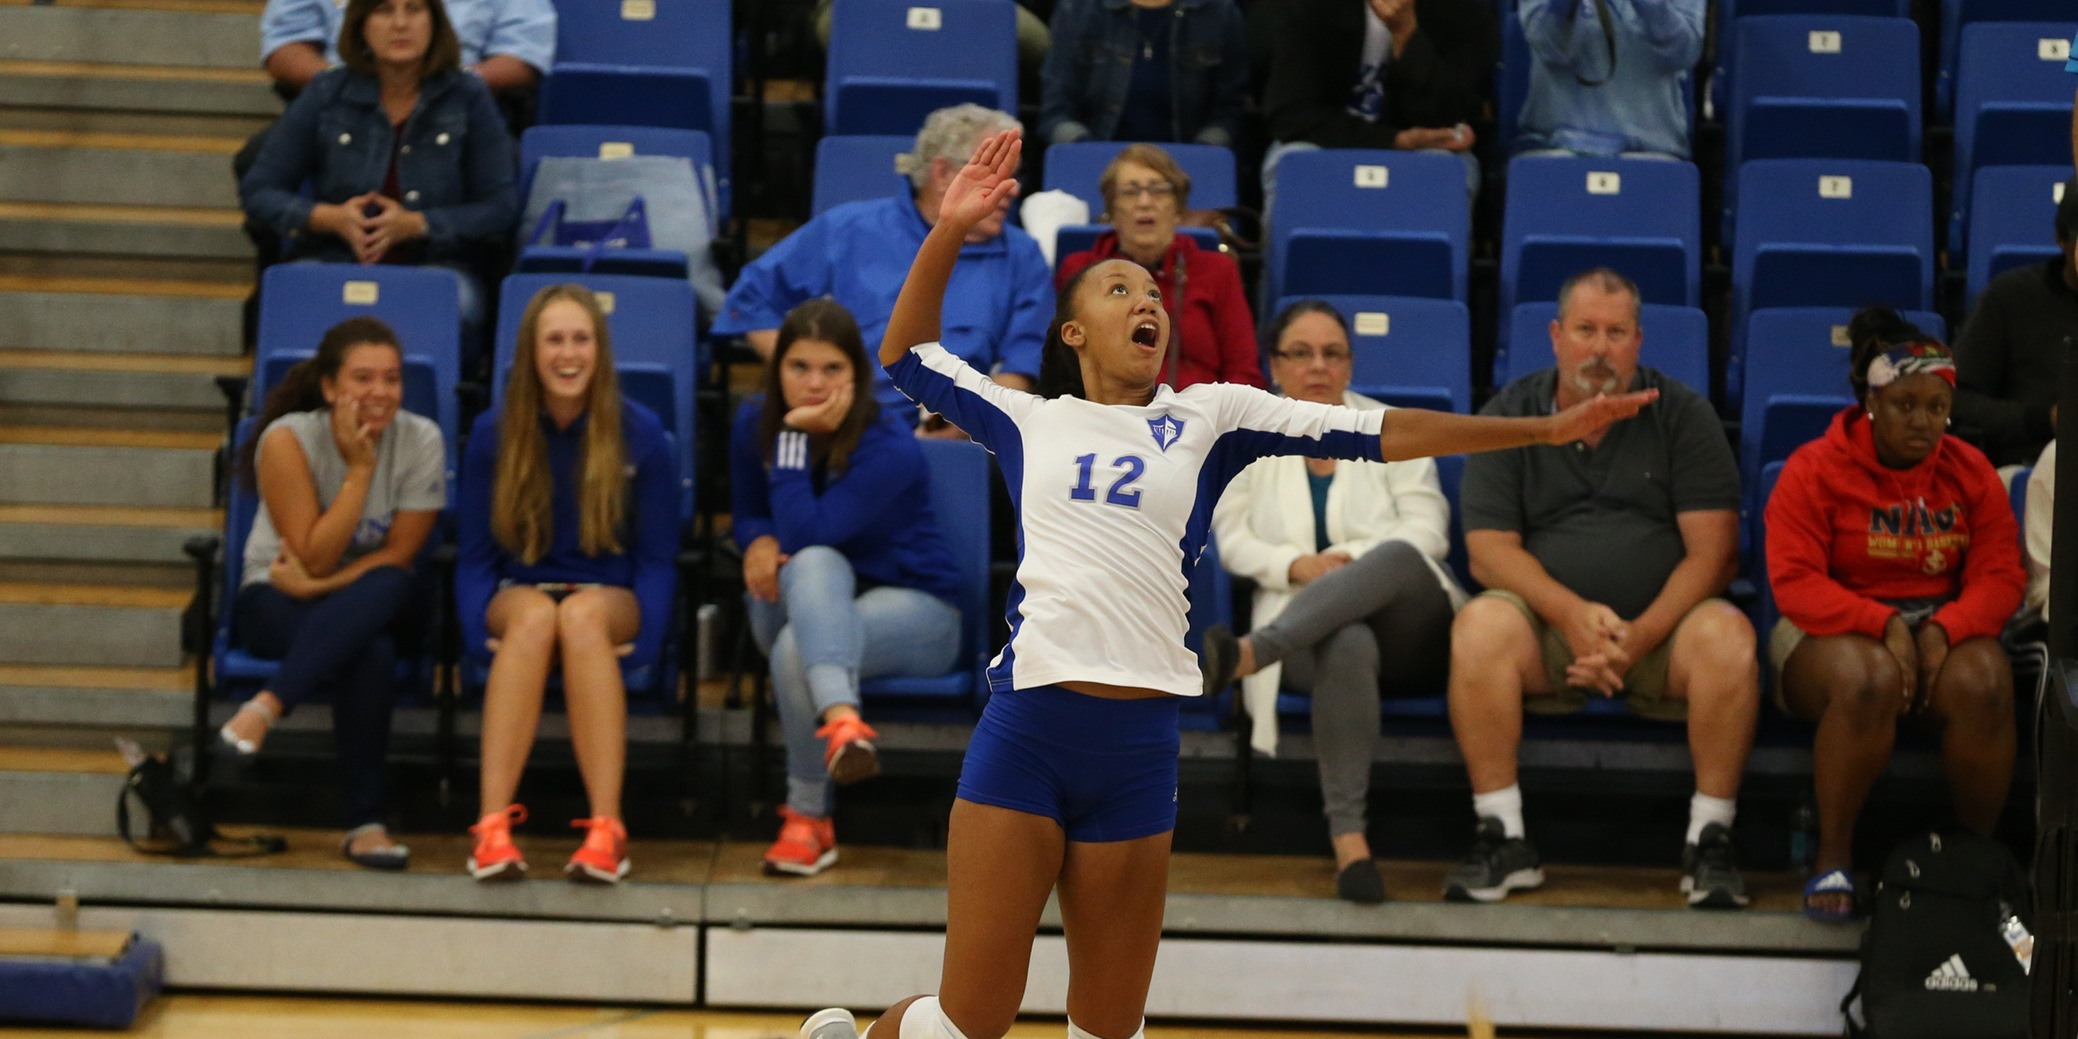 Volleyball Trumps Panthers in Regular-Season Finale